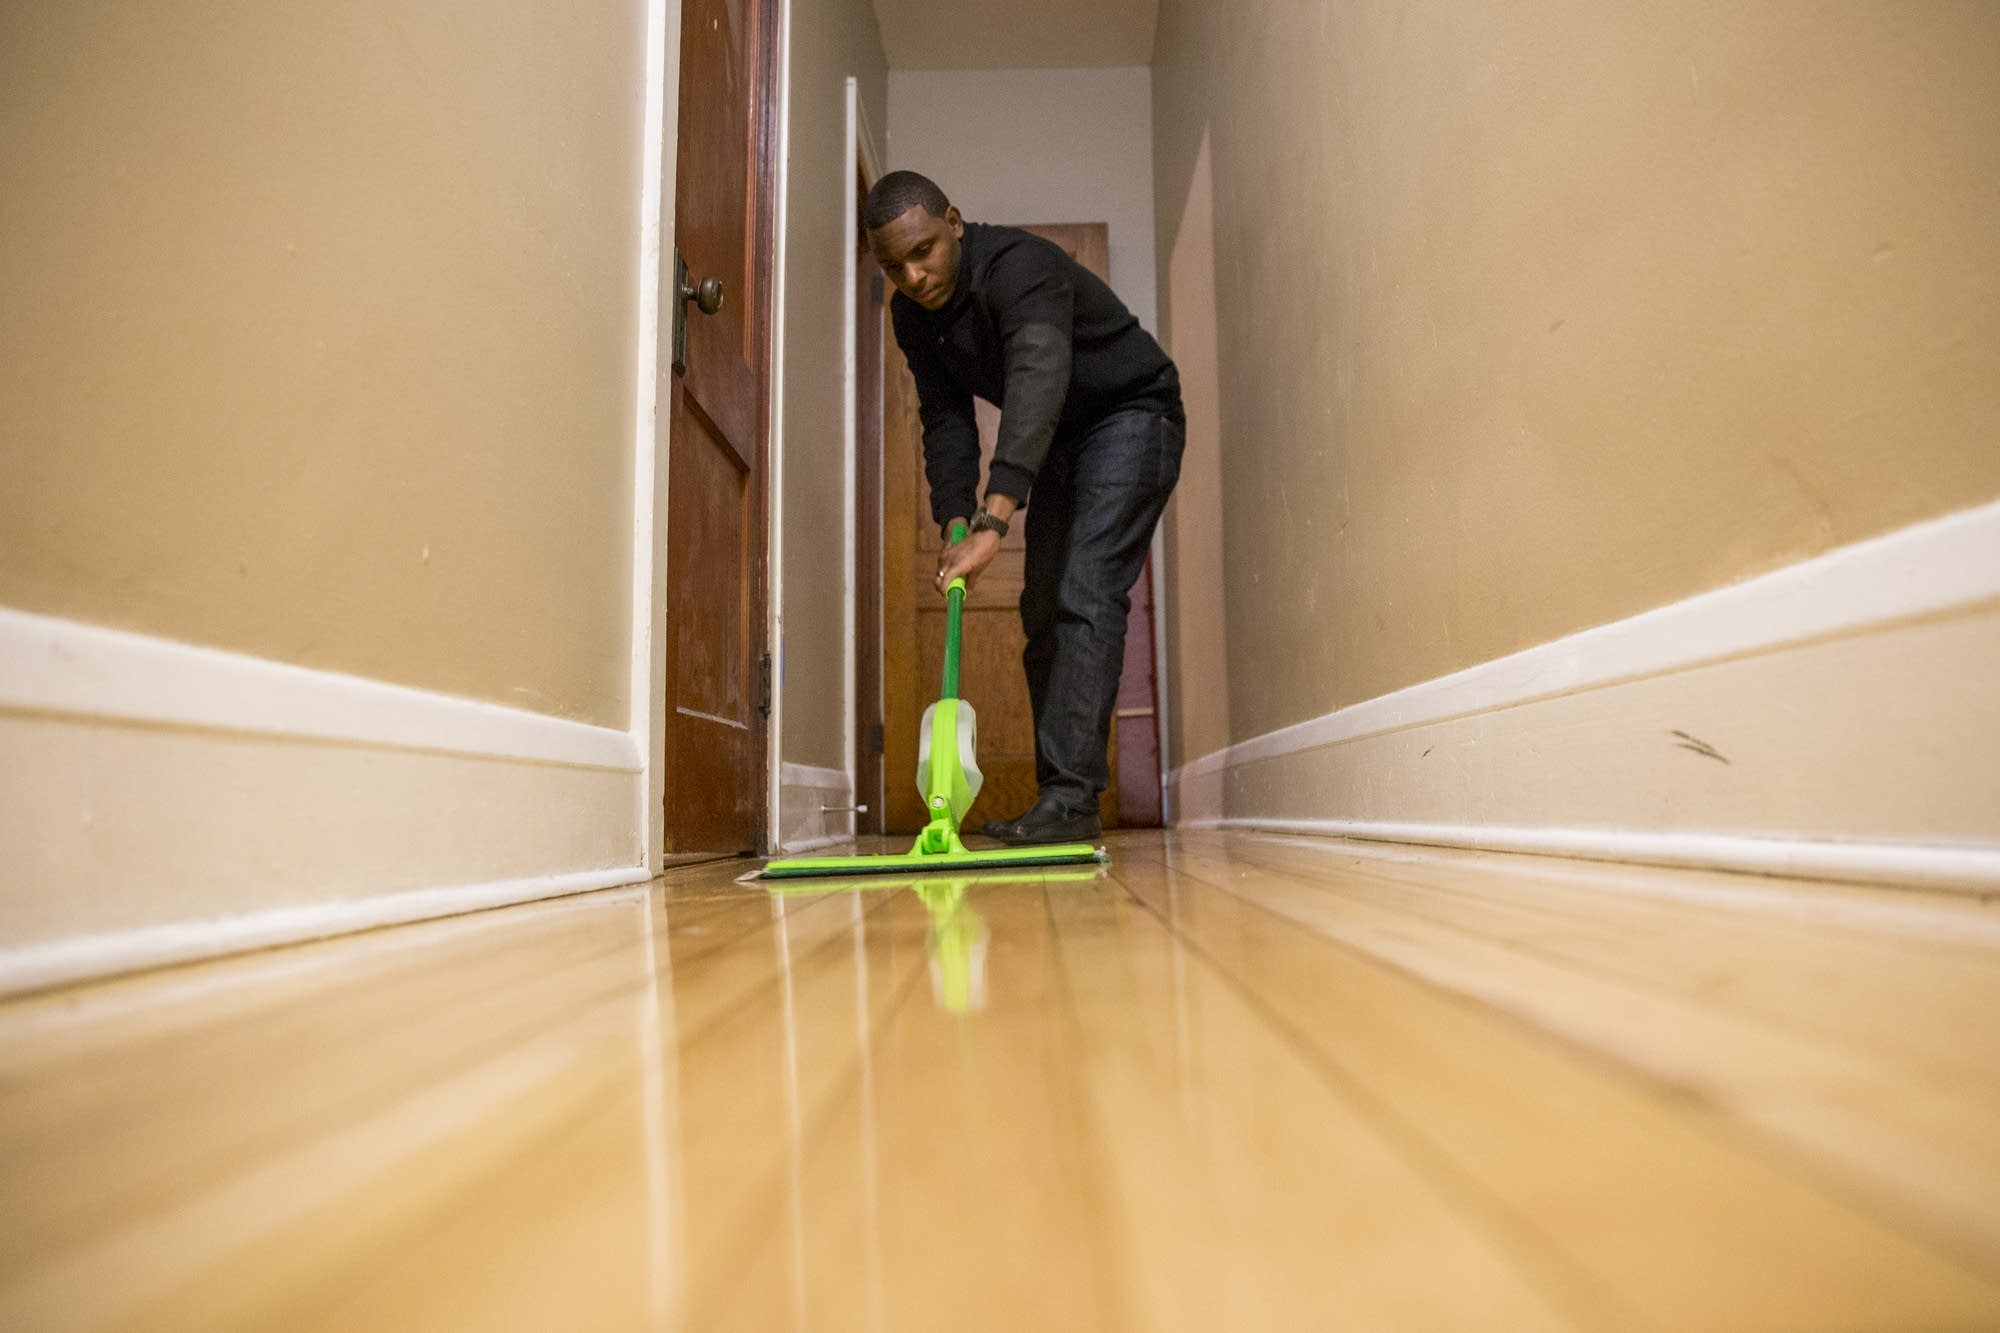 Elizer Darris mops the floor before his mom arrives.